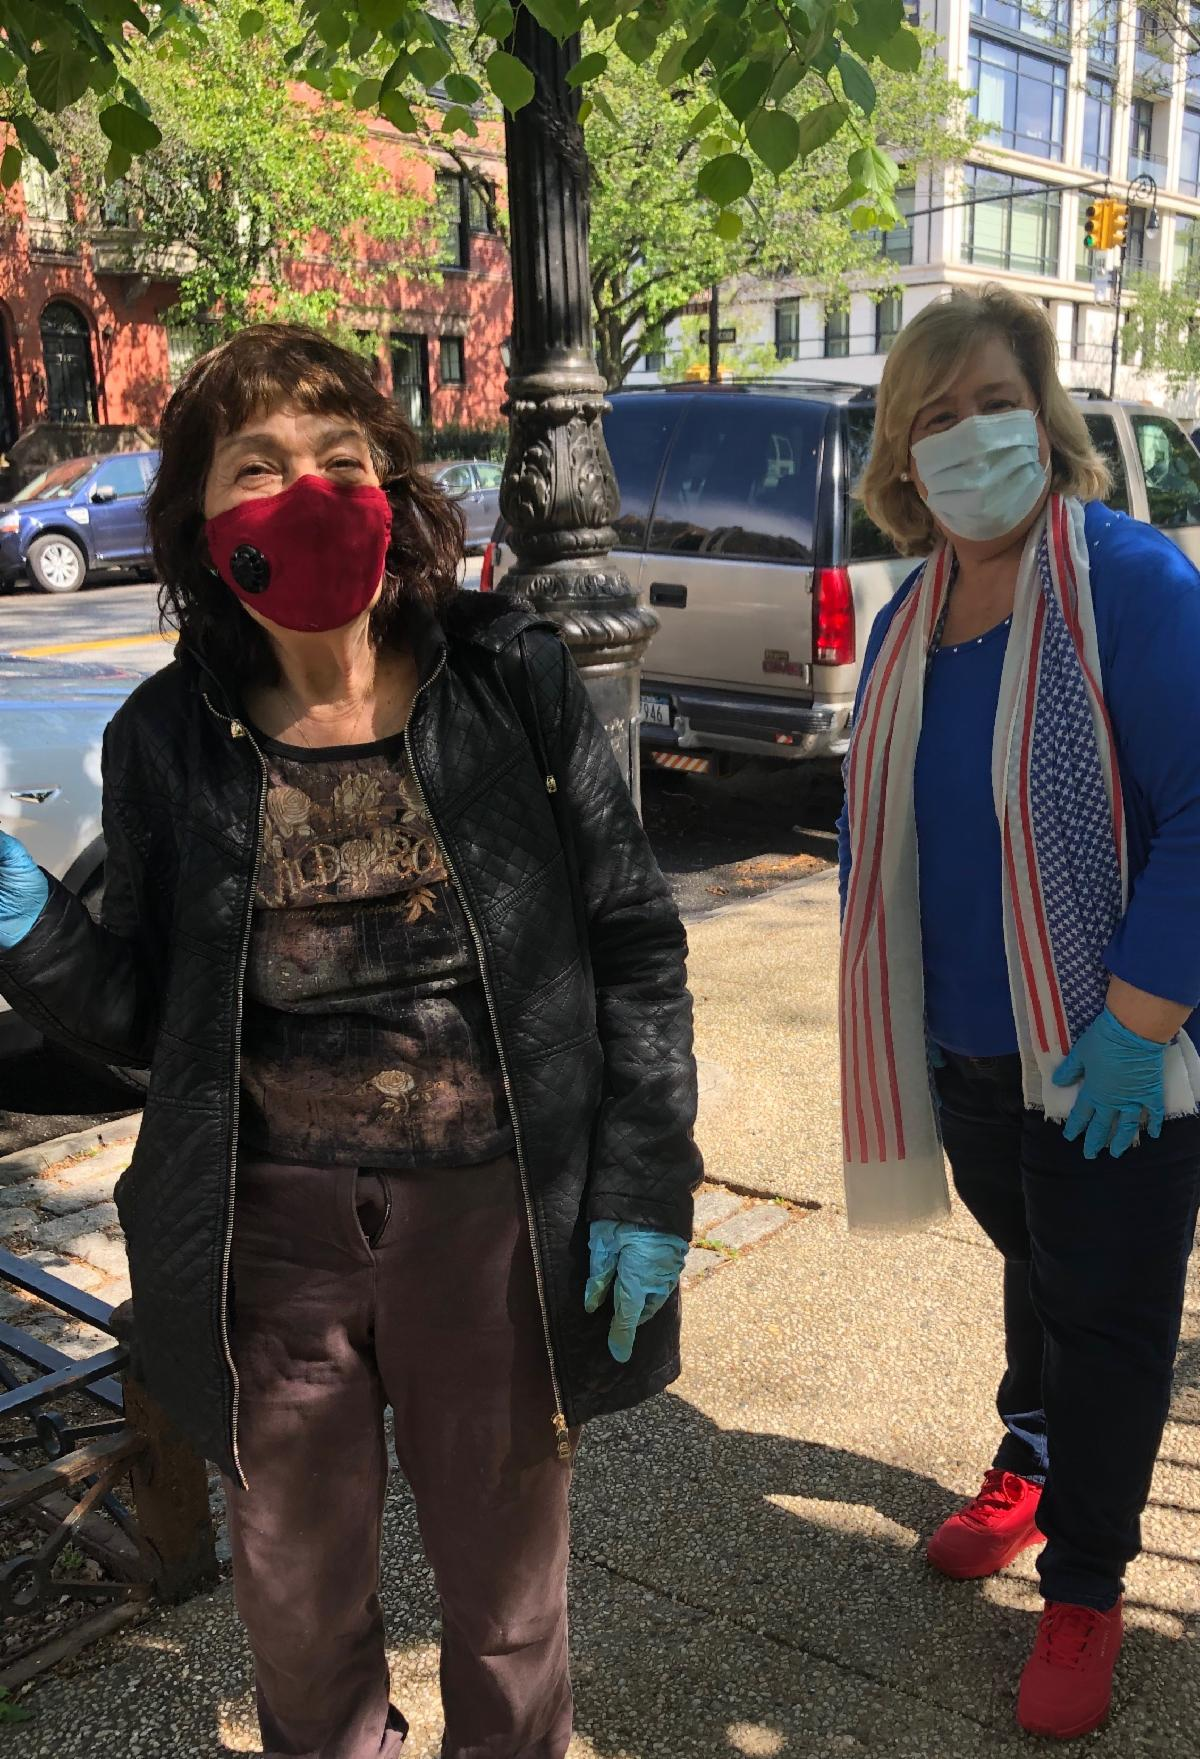 Jane Foss continues to volunteer to deliver homebound senior meals with the Office of Assembly Member Rebecca Seawright. This week, she distributed essential protective face masks and hand sanitizer t